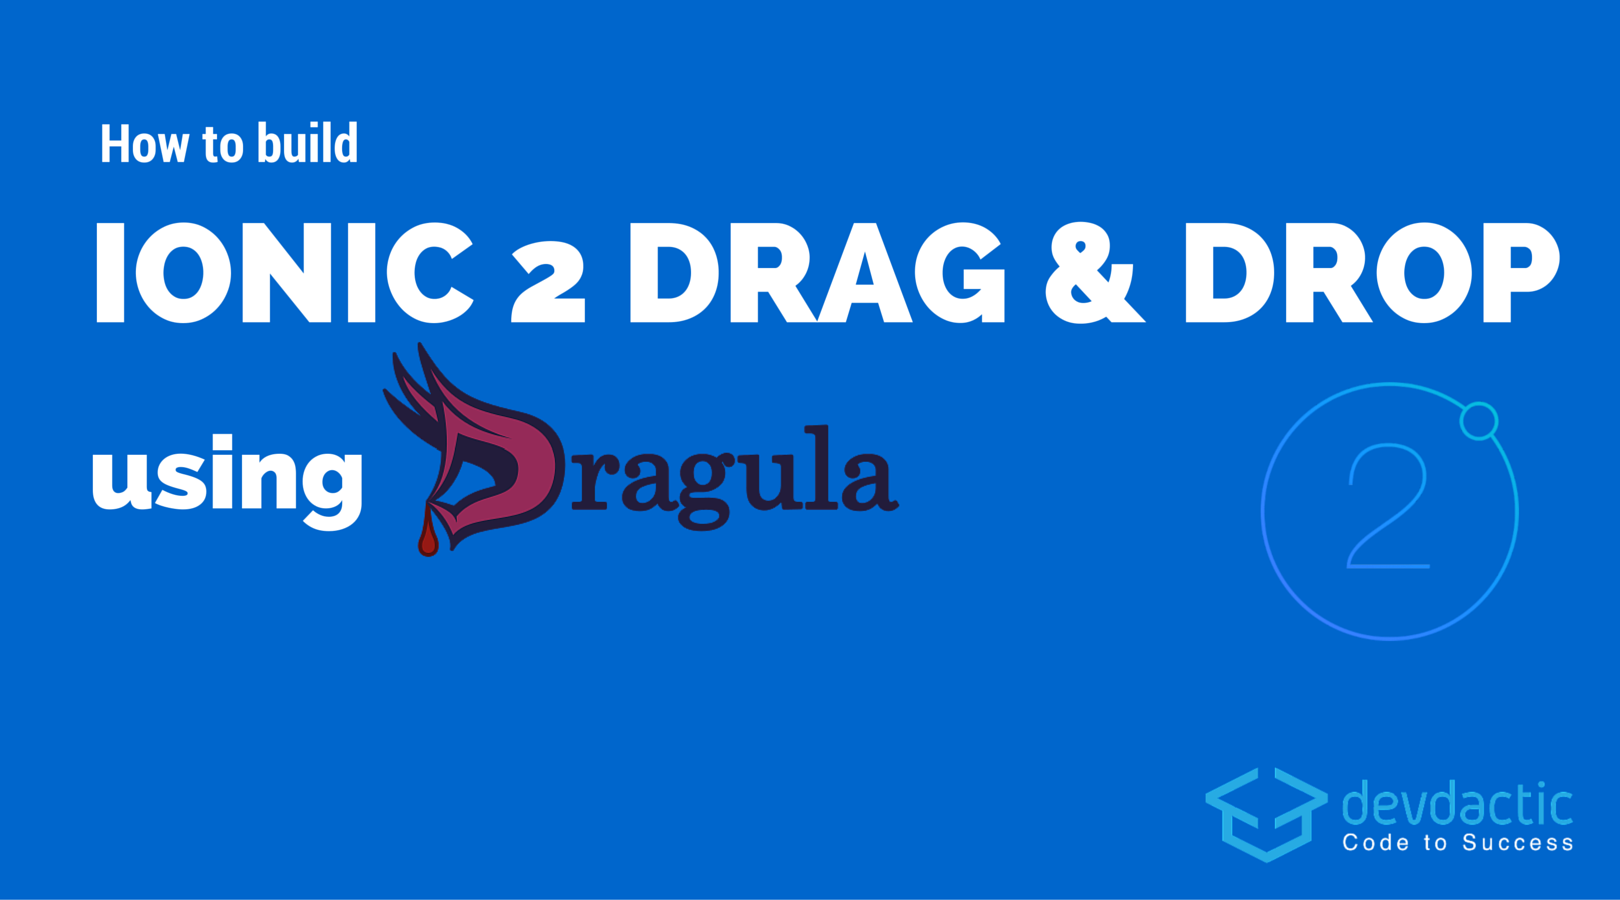 How to Build Ionic 2 Drag and Drop using Dragula - Devdactic